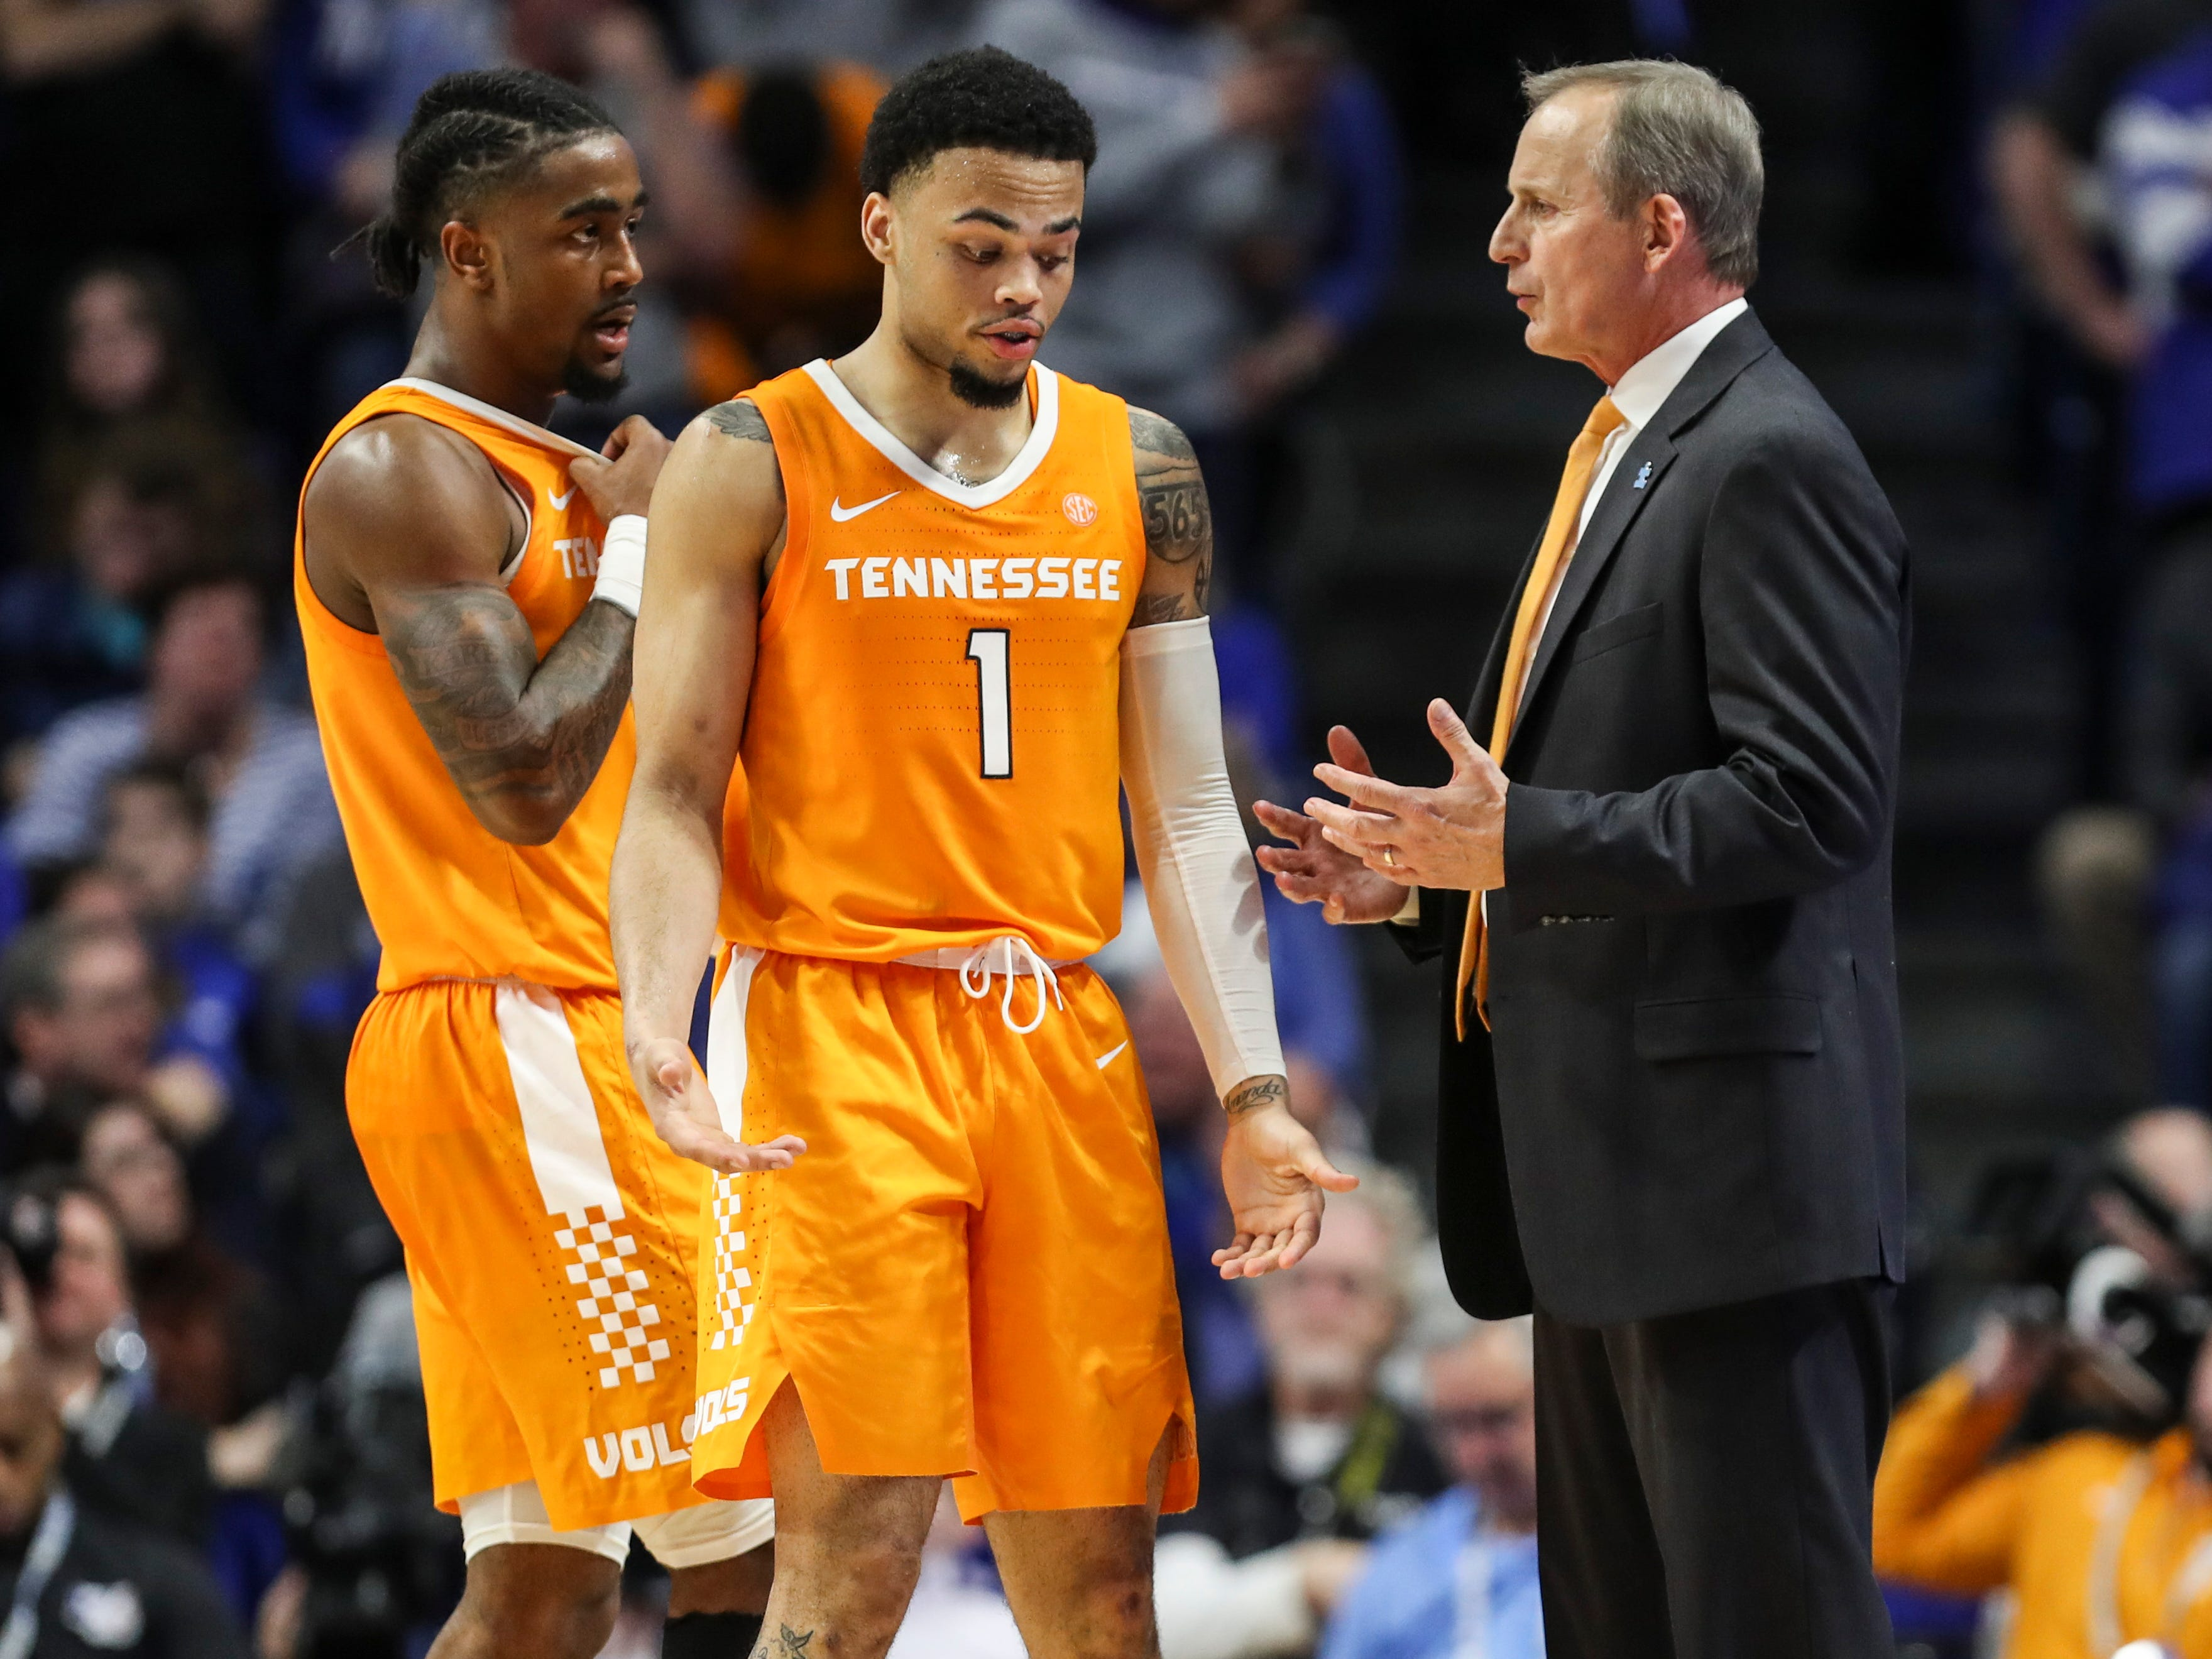 Tennessee's Rick Barnes didn't have the answers to defeat Kentucky at Rupp Feb. 16, 2019